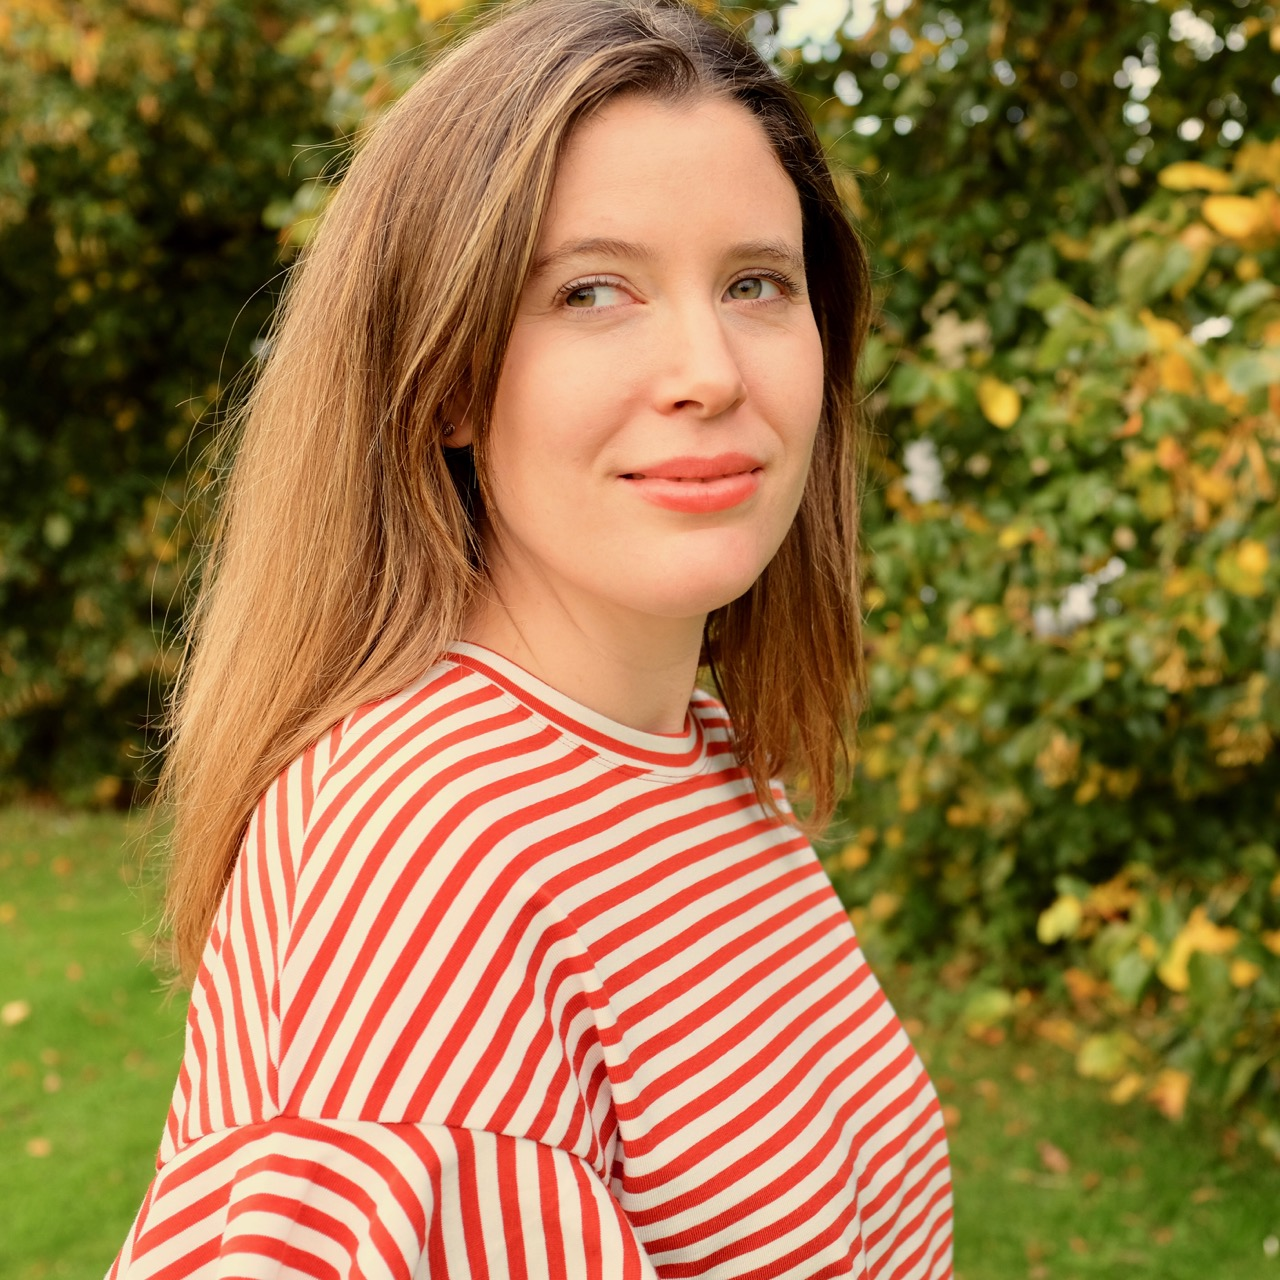 Red and white stripy top